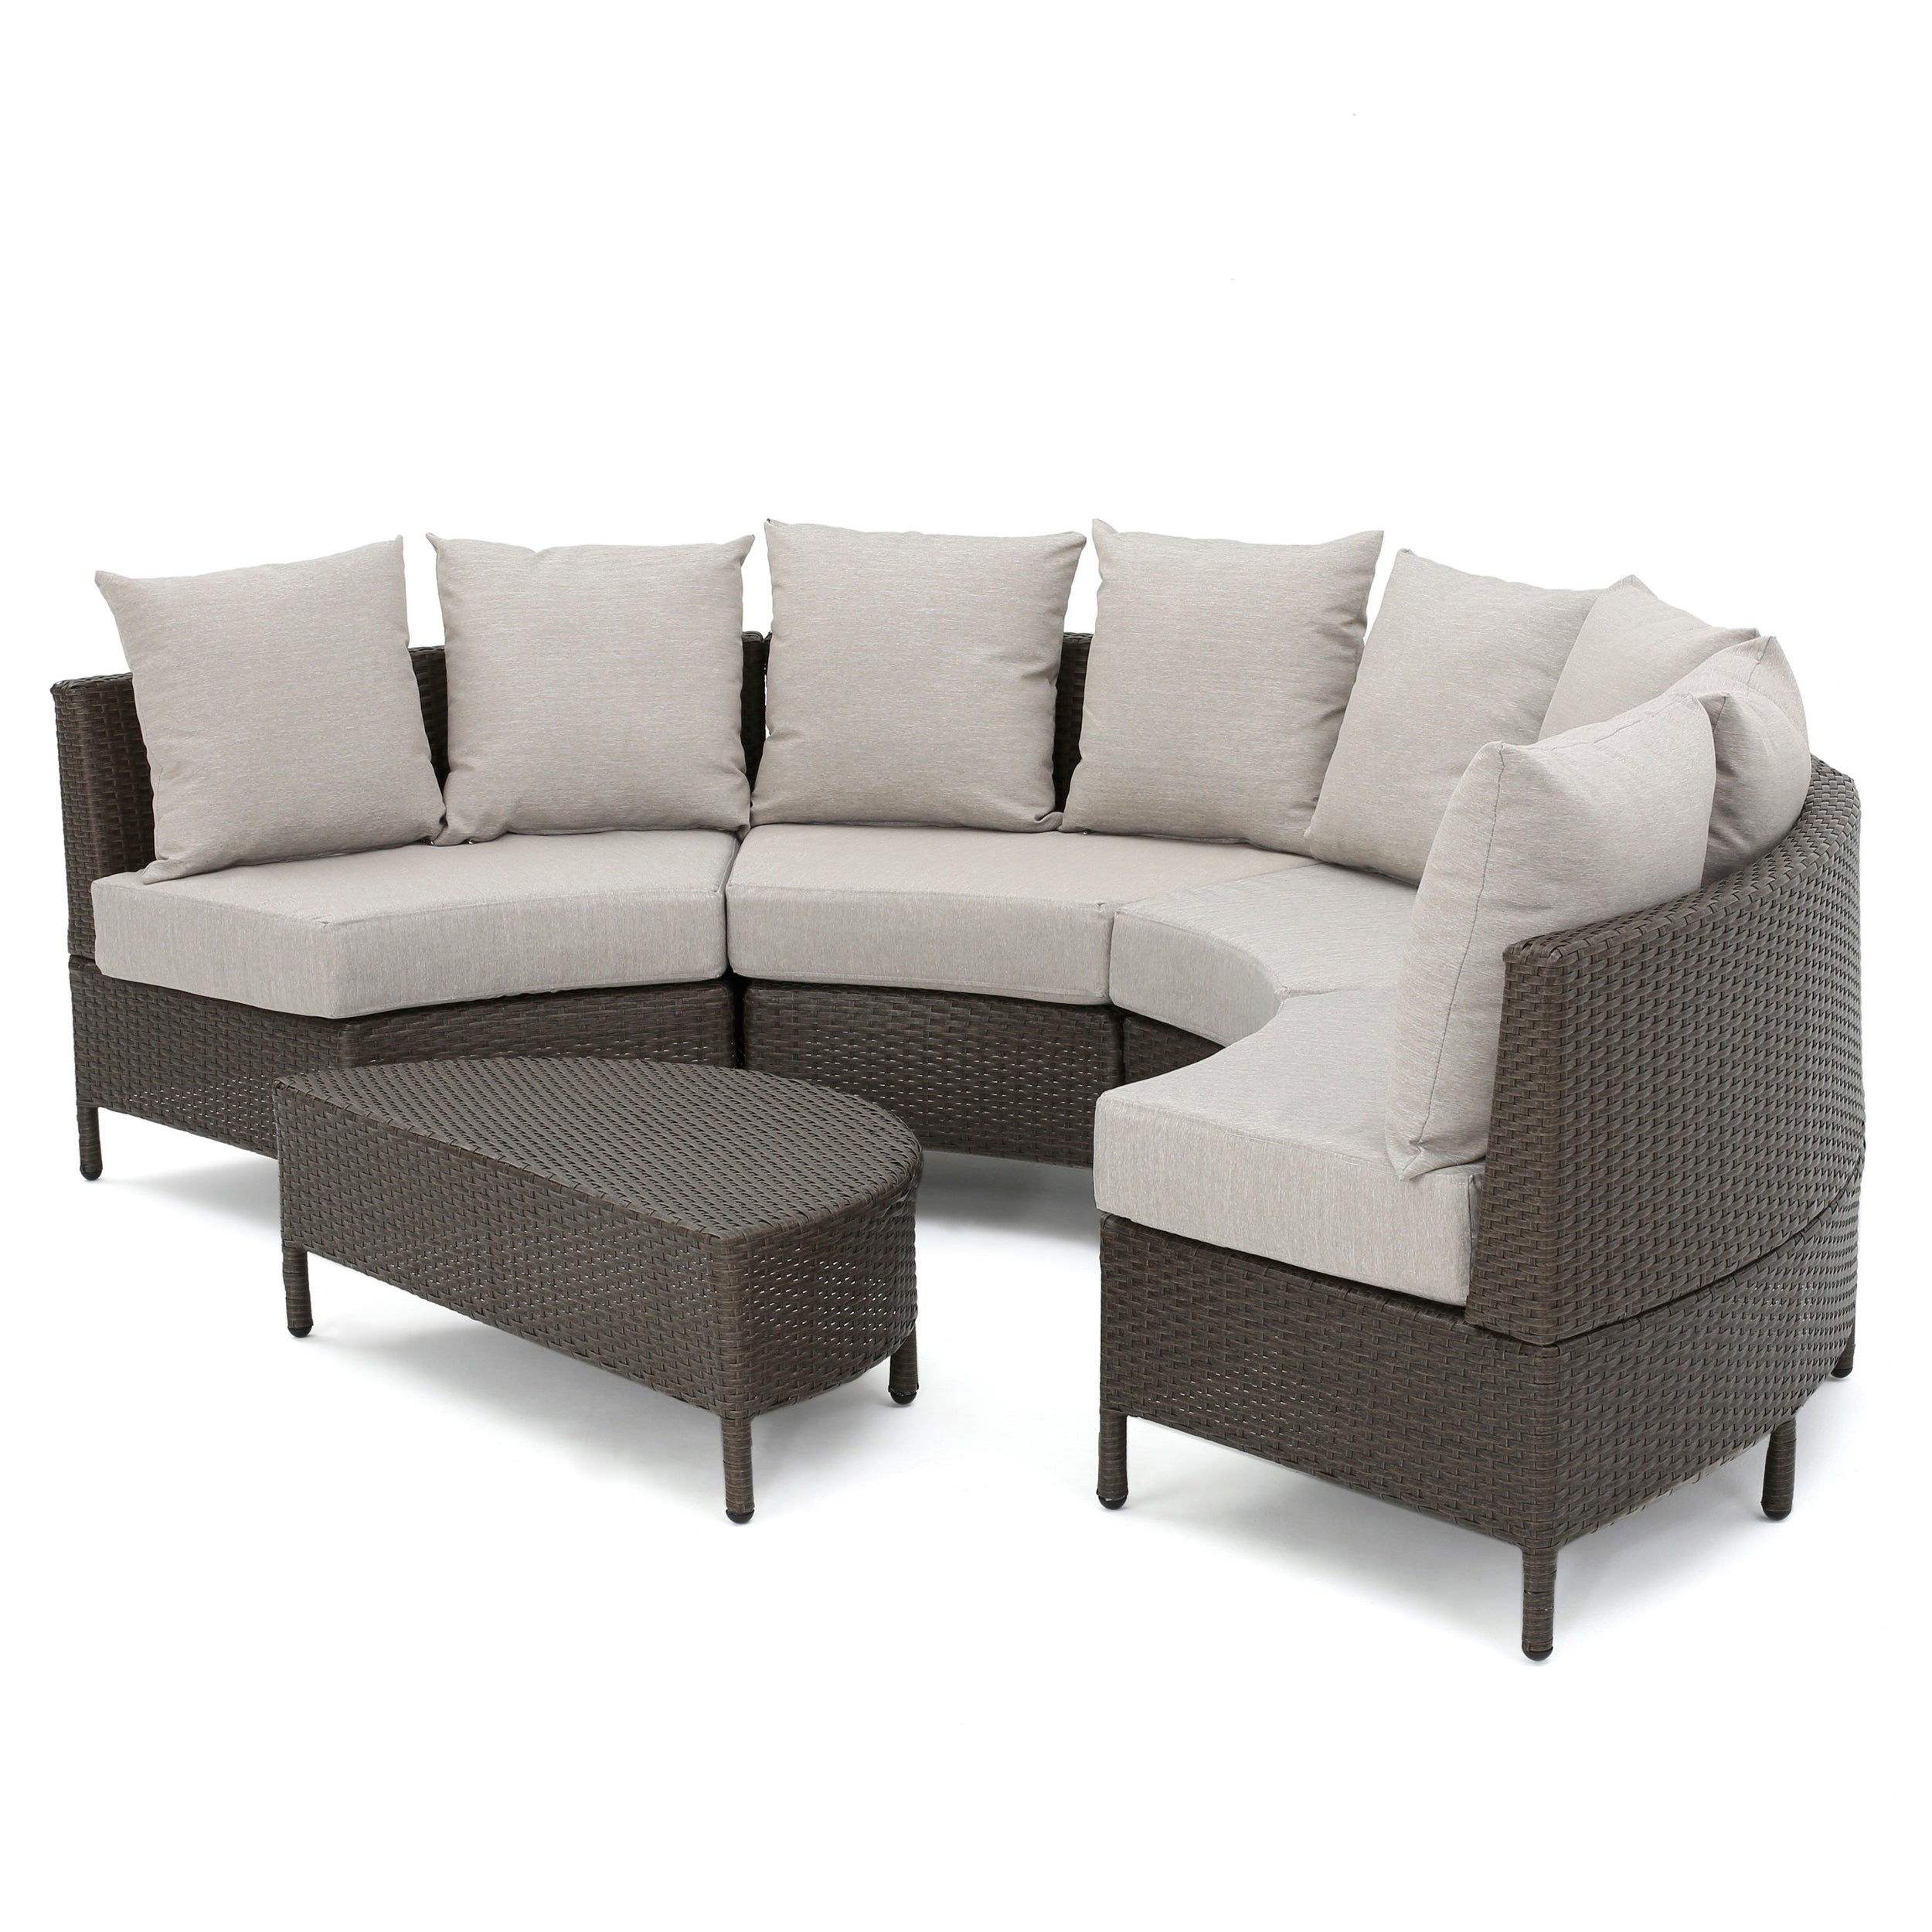 Alacati Outdoor 5 Piece Wicker Sofa Set with Water Resistant Cushions